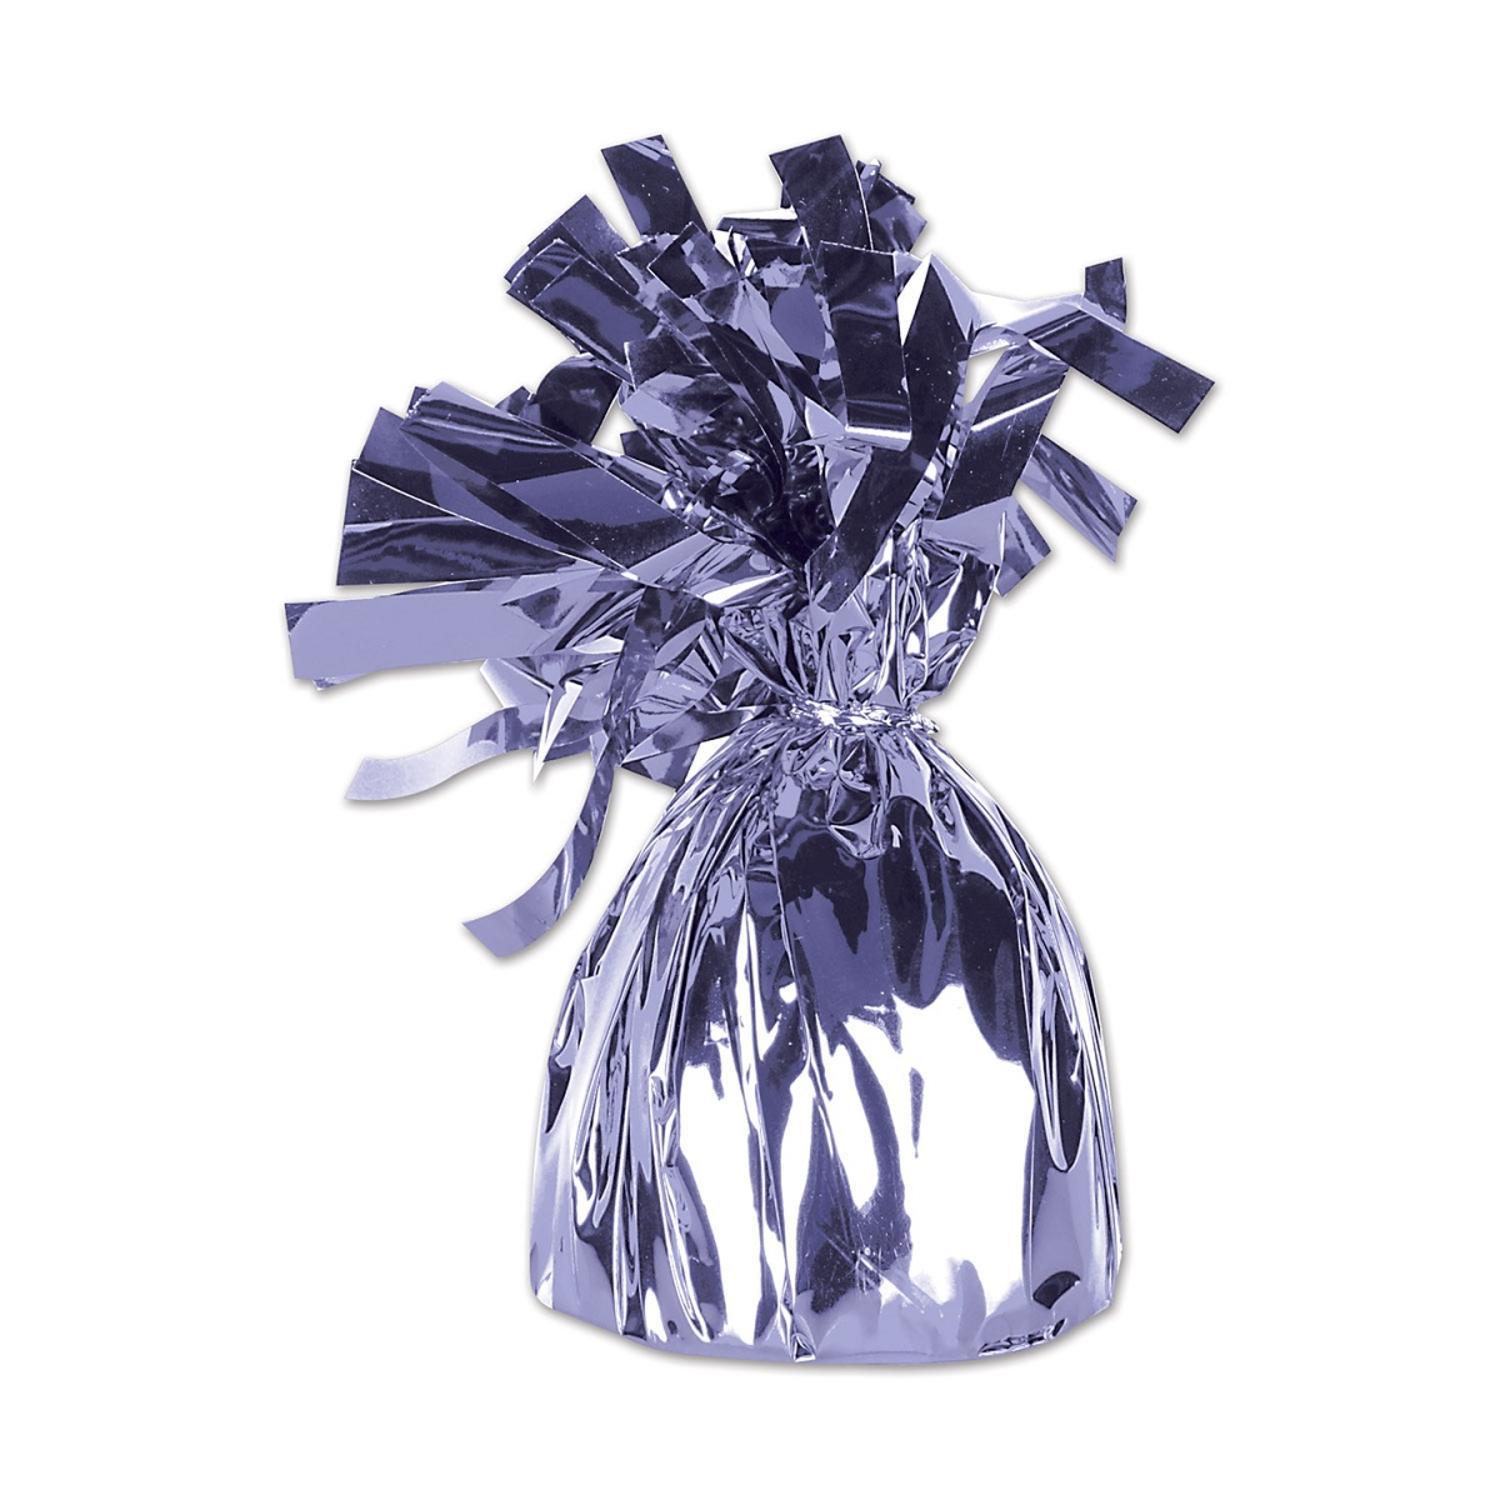 Club Pack of 12 Metallic Lilac Party Balloon Weight Decorative Birthday Centerpieces 6 oz.